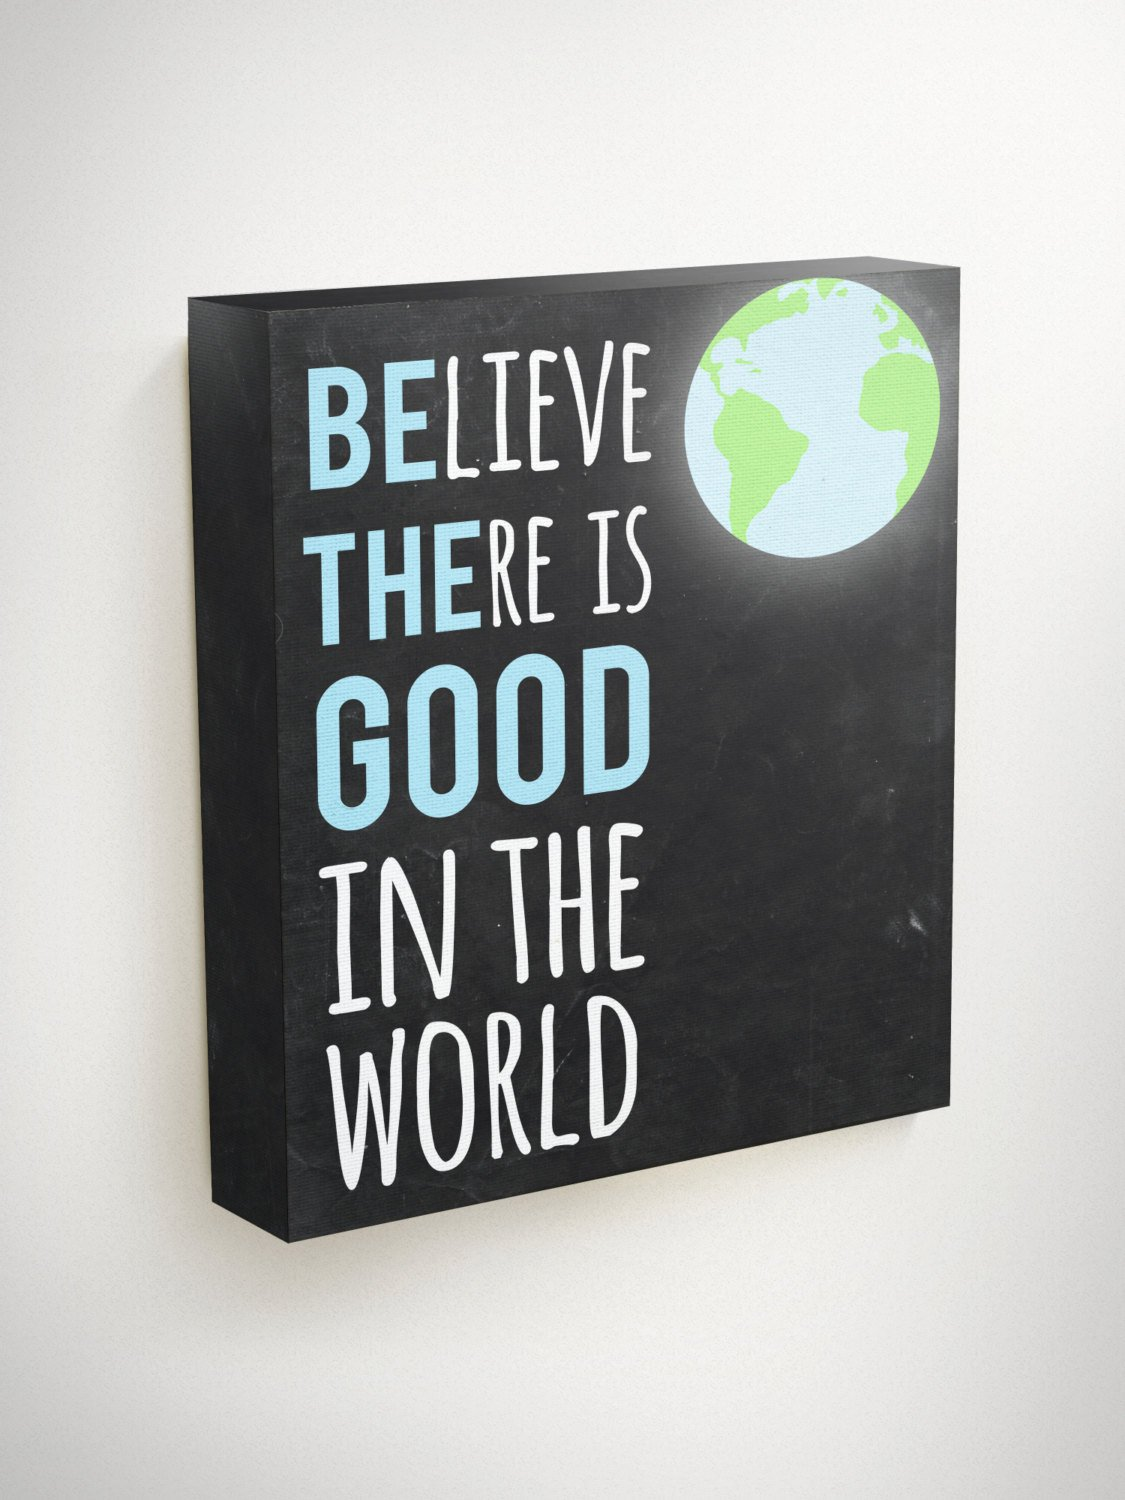 World Canvas, Graduation Gift, Believe There Is Good In The World, Positive Quotes, Student Gifts, Farewell Gift, Inspirational Canvas, Teen